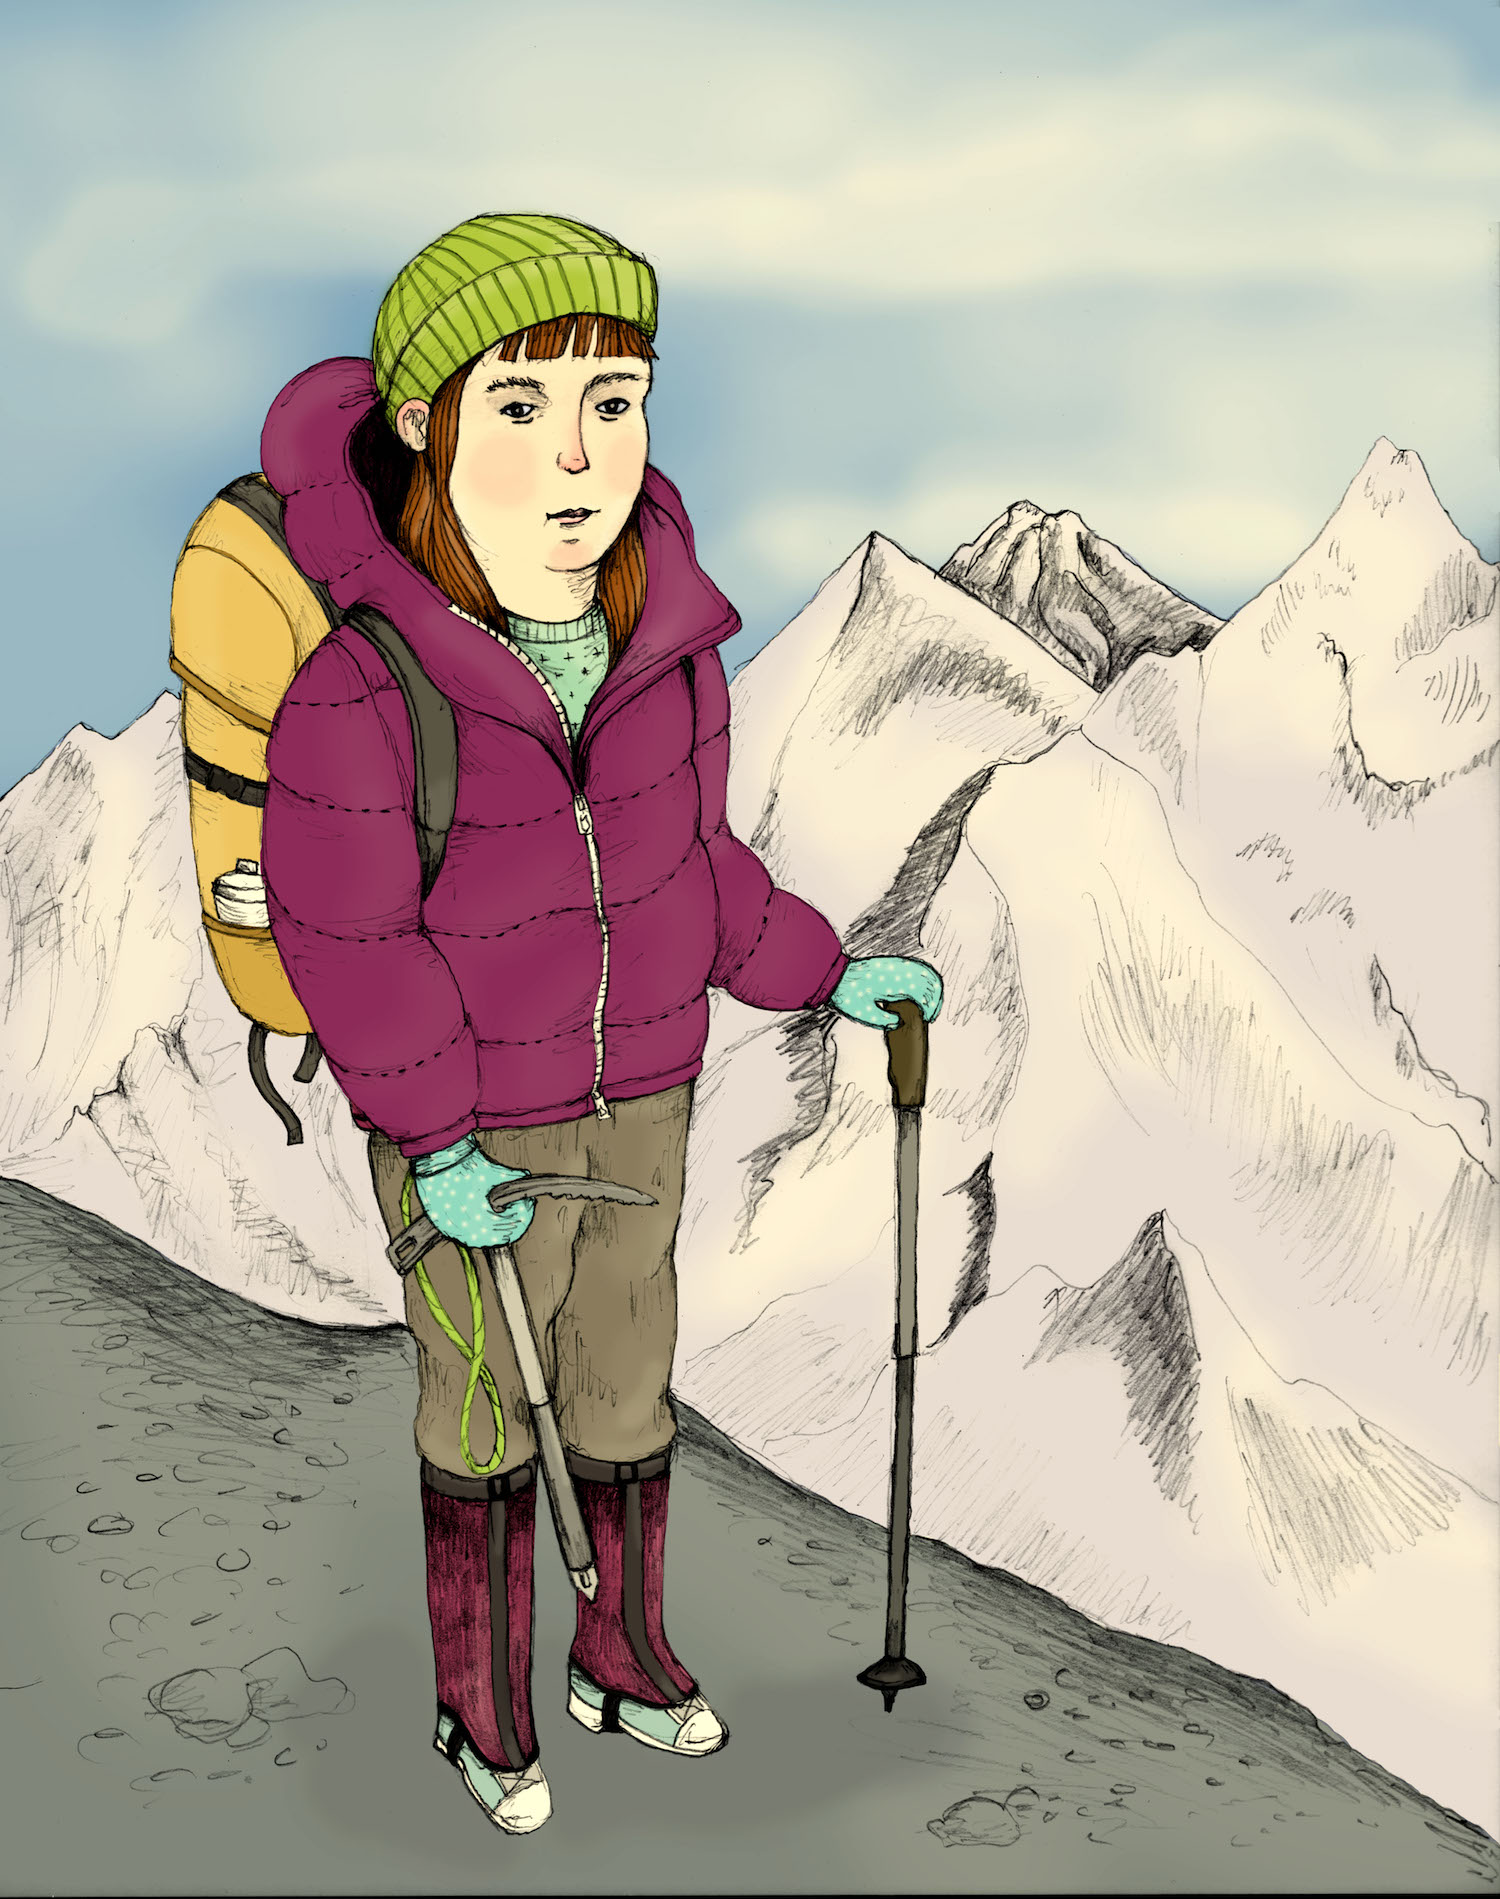 Self-portrait as mountaineer.